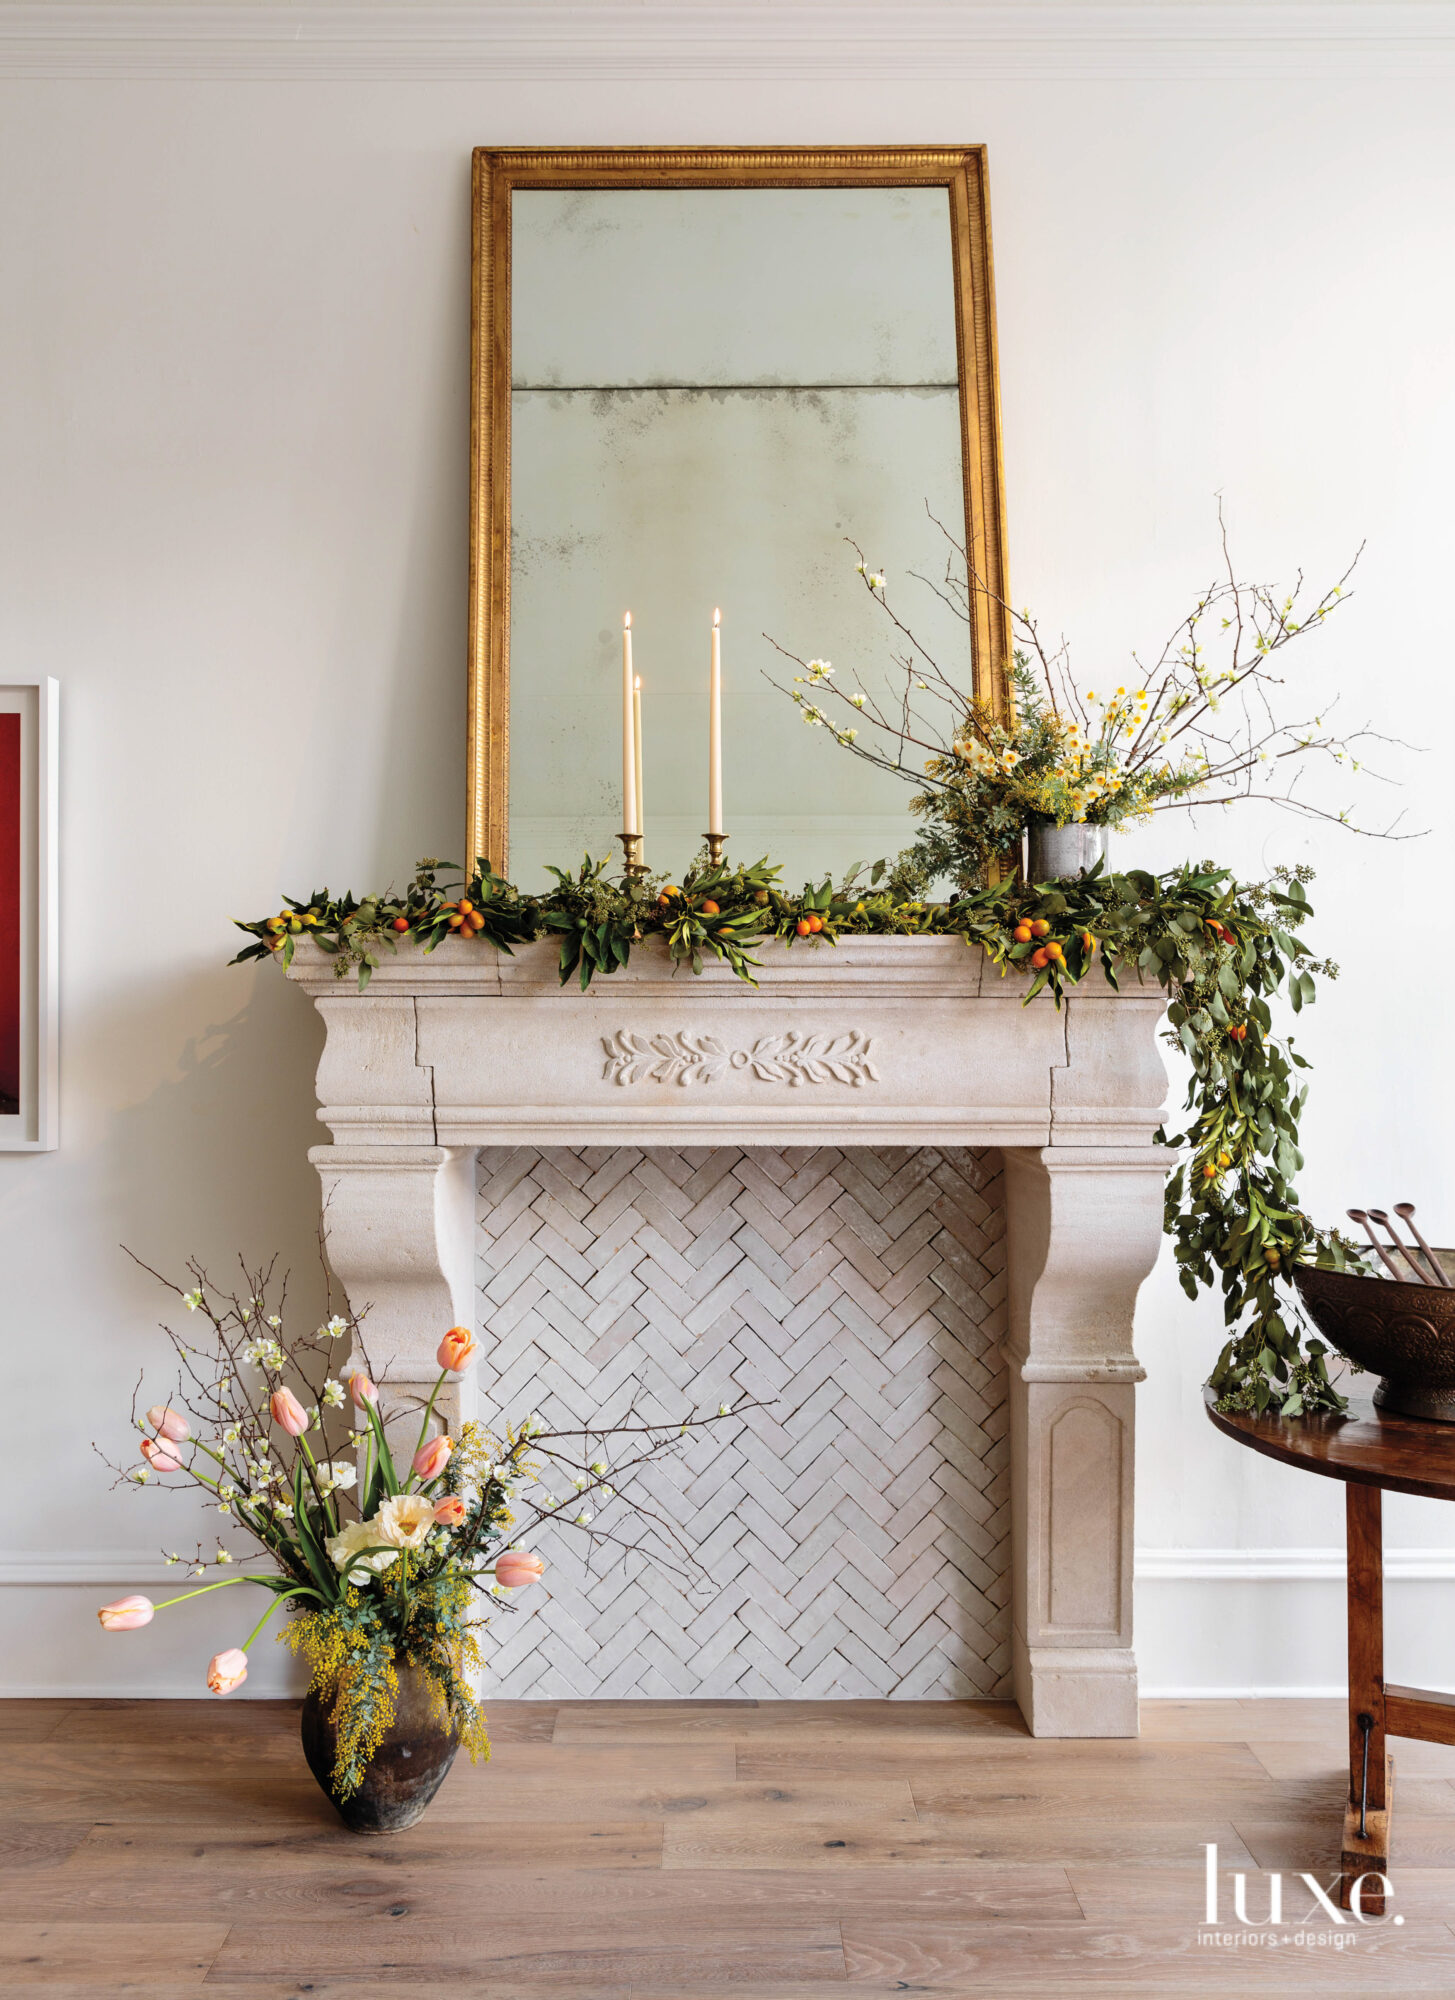 A fireplace mantel is decorated by a garland.